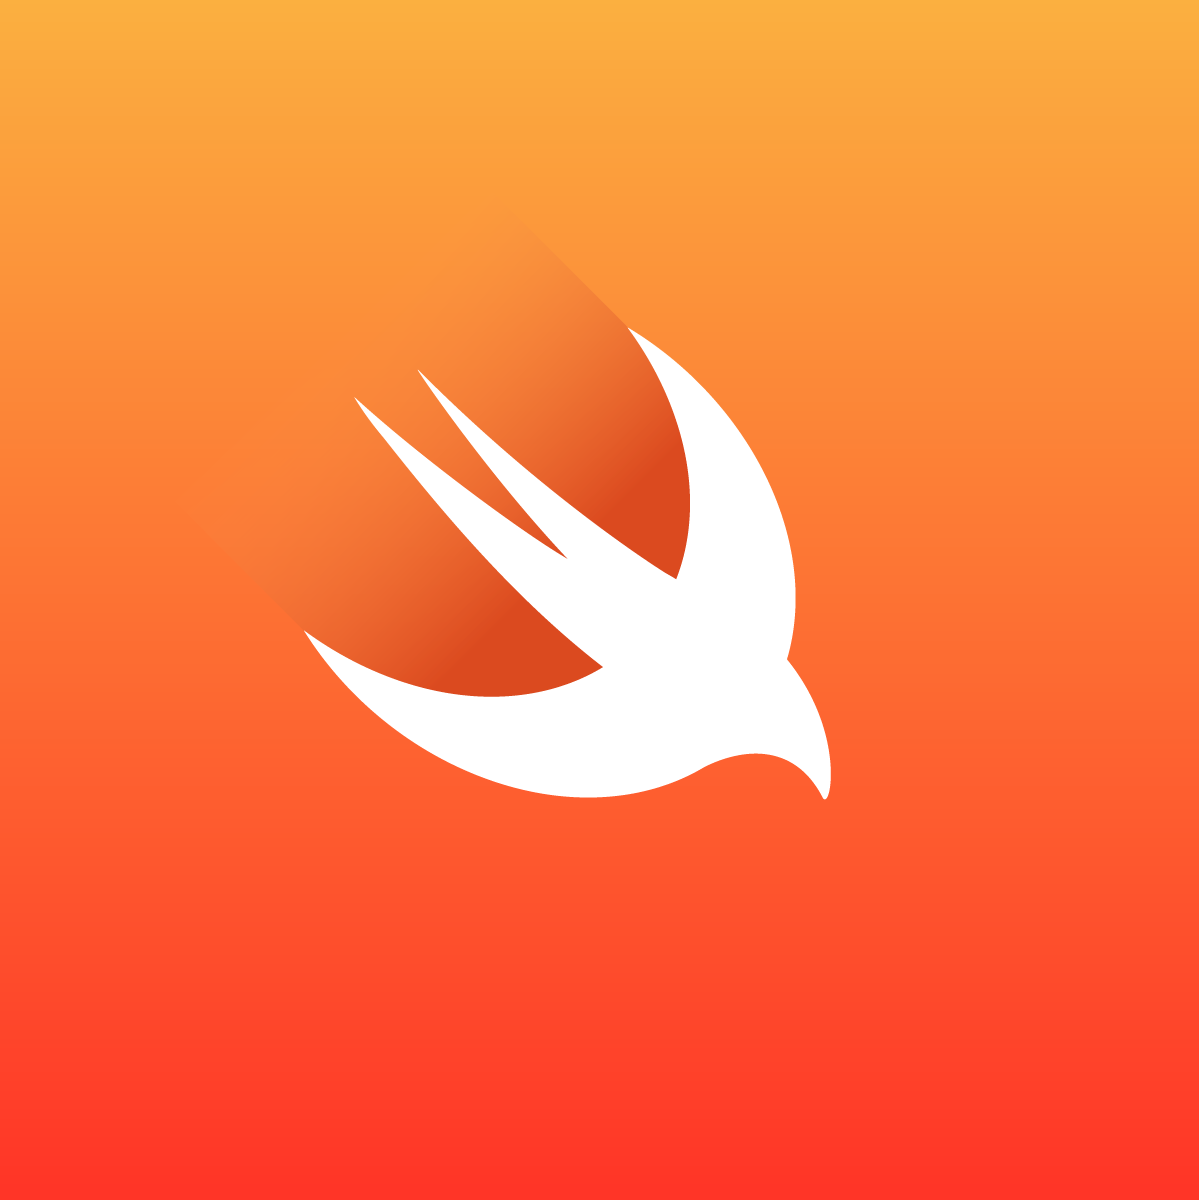 IBM and Apple move swiftly to leverage Swift